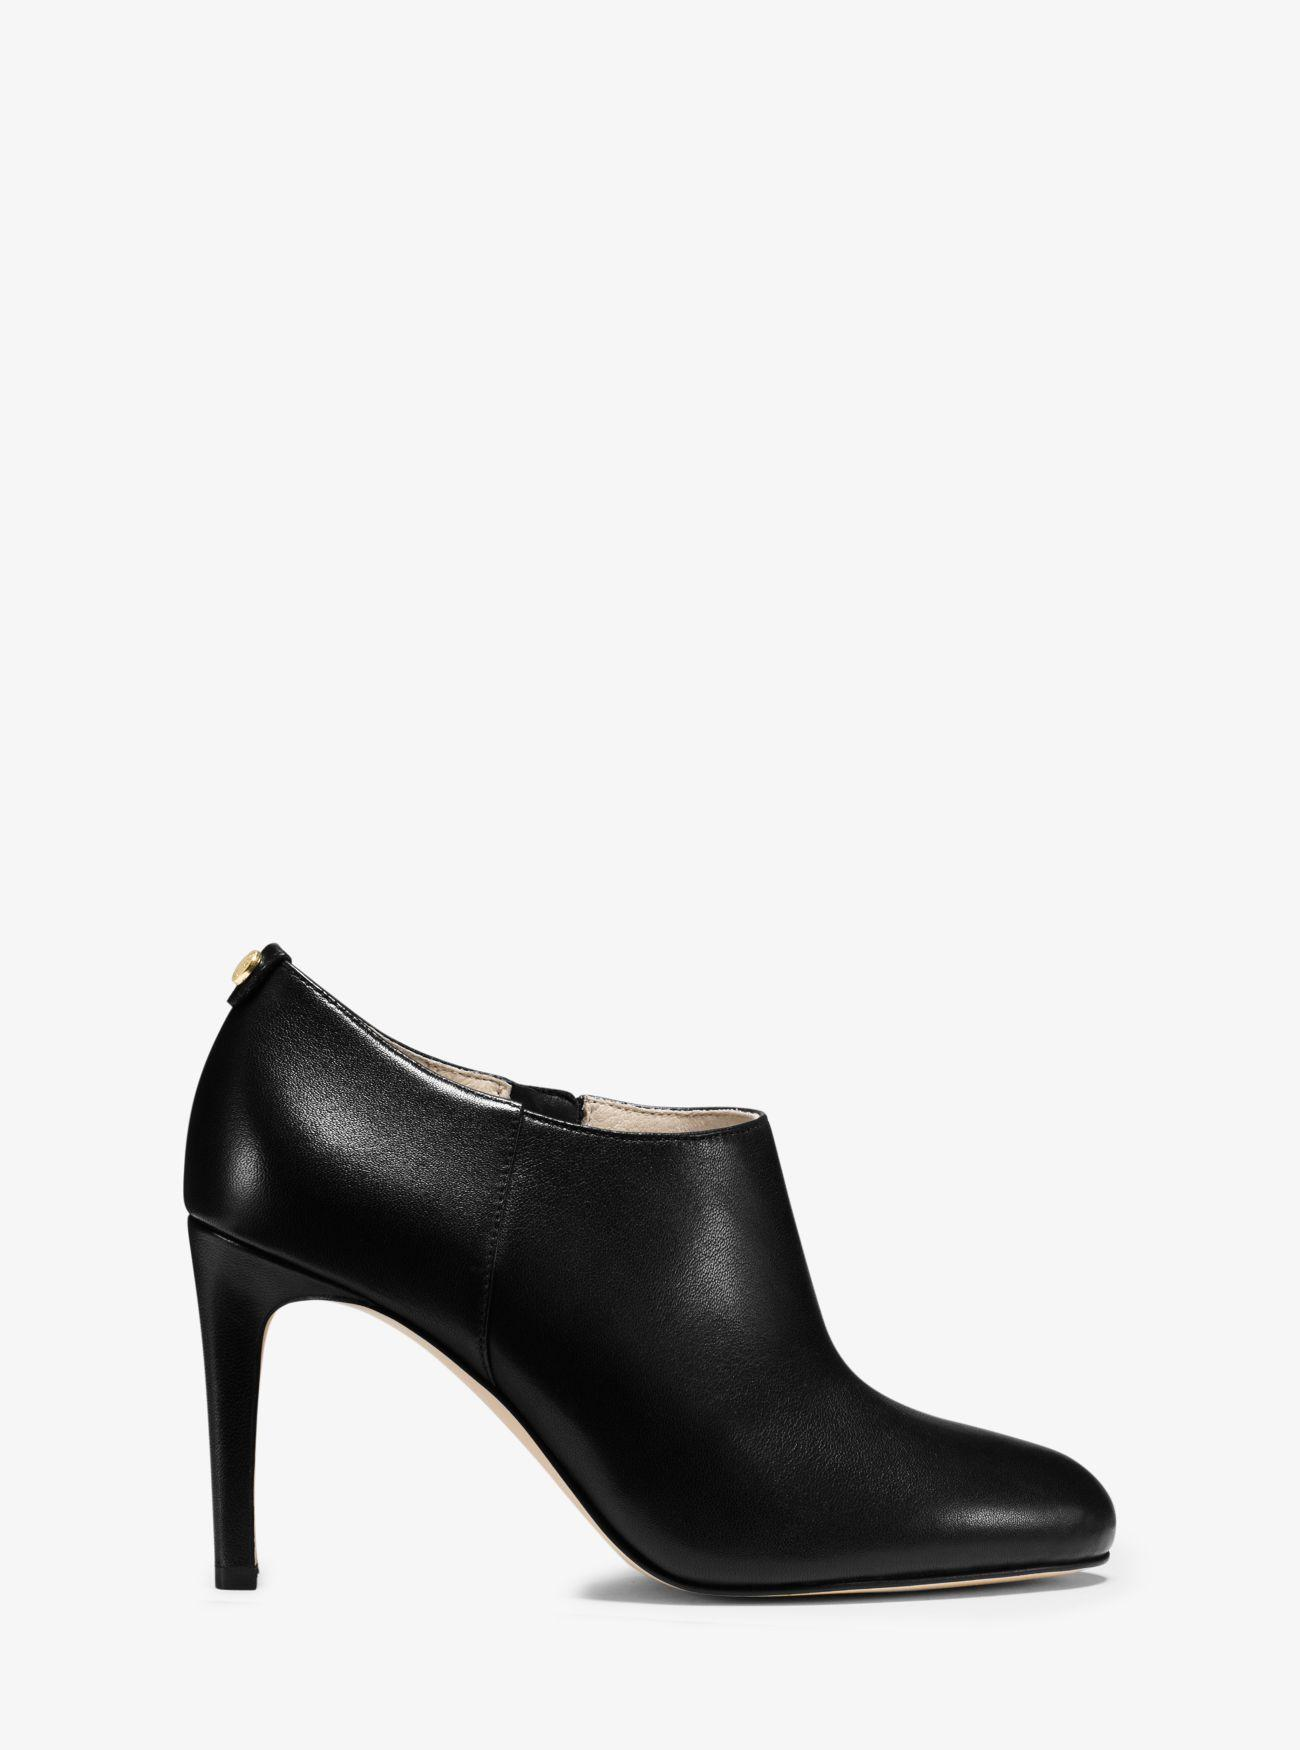 Michael Kors Sammy Leather Ankle Boot in Black